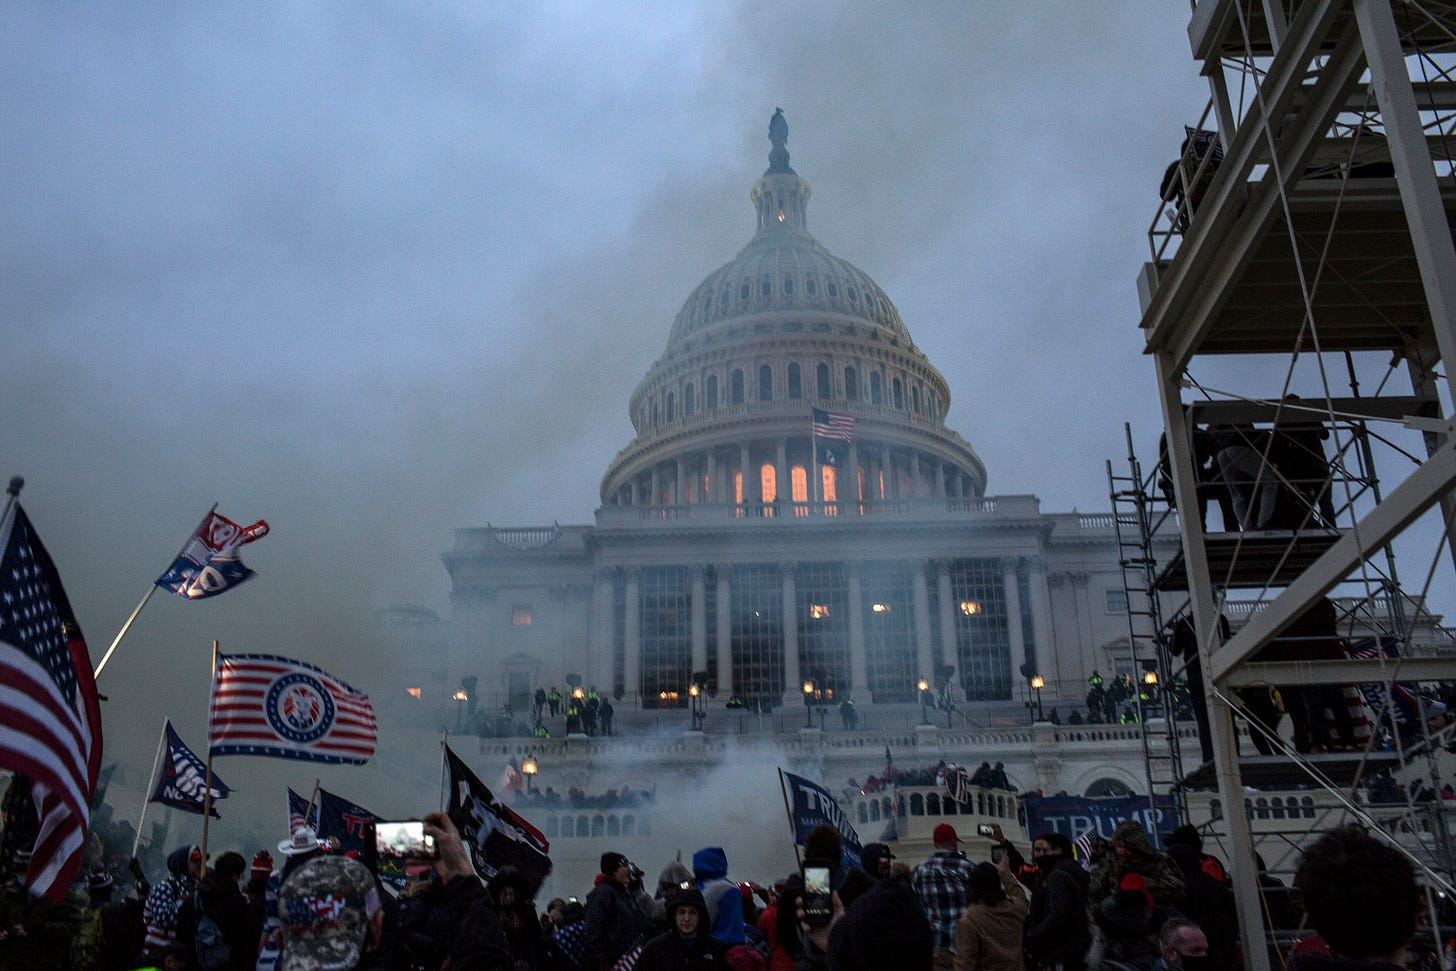 : Security forces respond with tear gas after the US President Donald Trump's supporters breached the US Capitol security. Pro-Trump rioters stormed the US Capitol as lawmakers were set to sign off Wednesday on President-elect Joe Biden's electoral victory in what was supposed to be a routine process headed to Inauguration Day. (Photo by Probal Rashid/LightRocket via Getty Images)